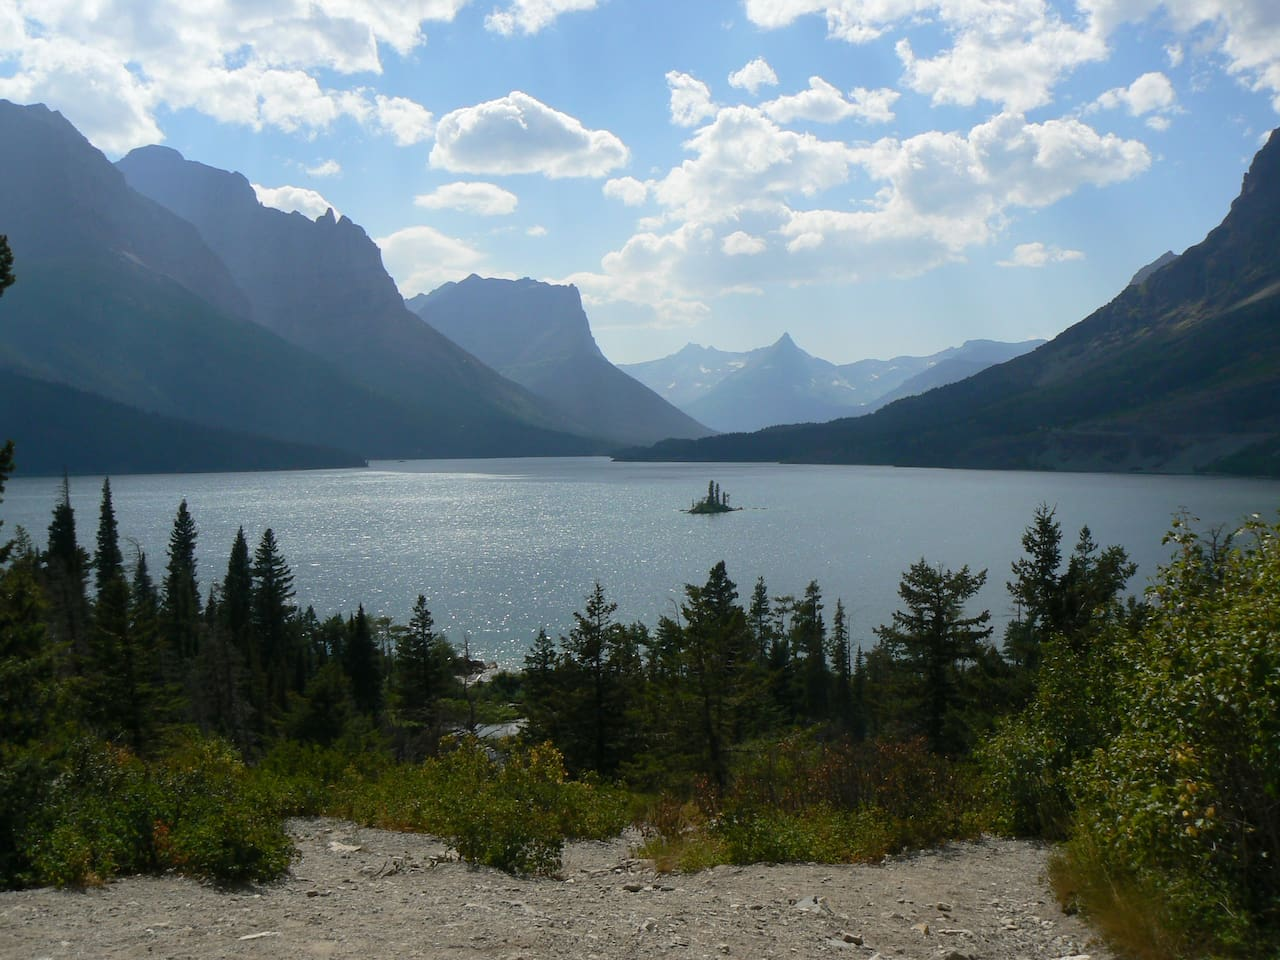 Near St. Mary's Lake at Glacier National Park (this is not a view from our living room)